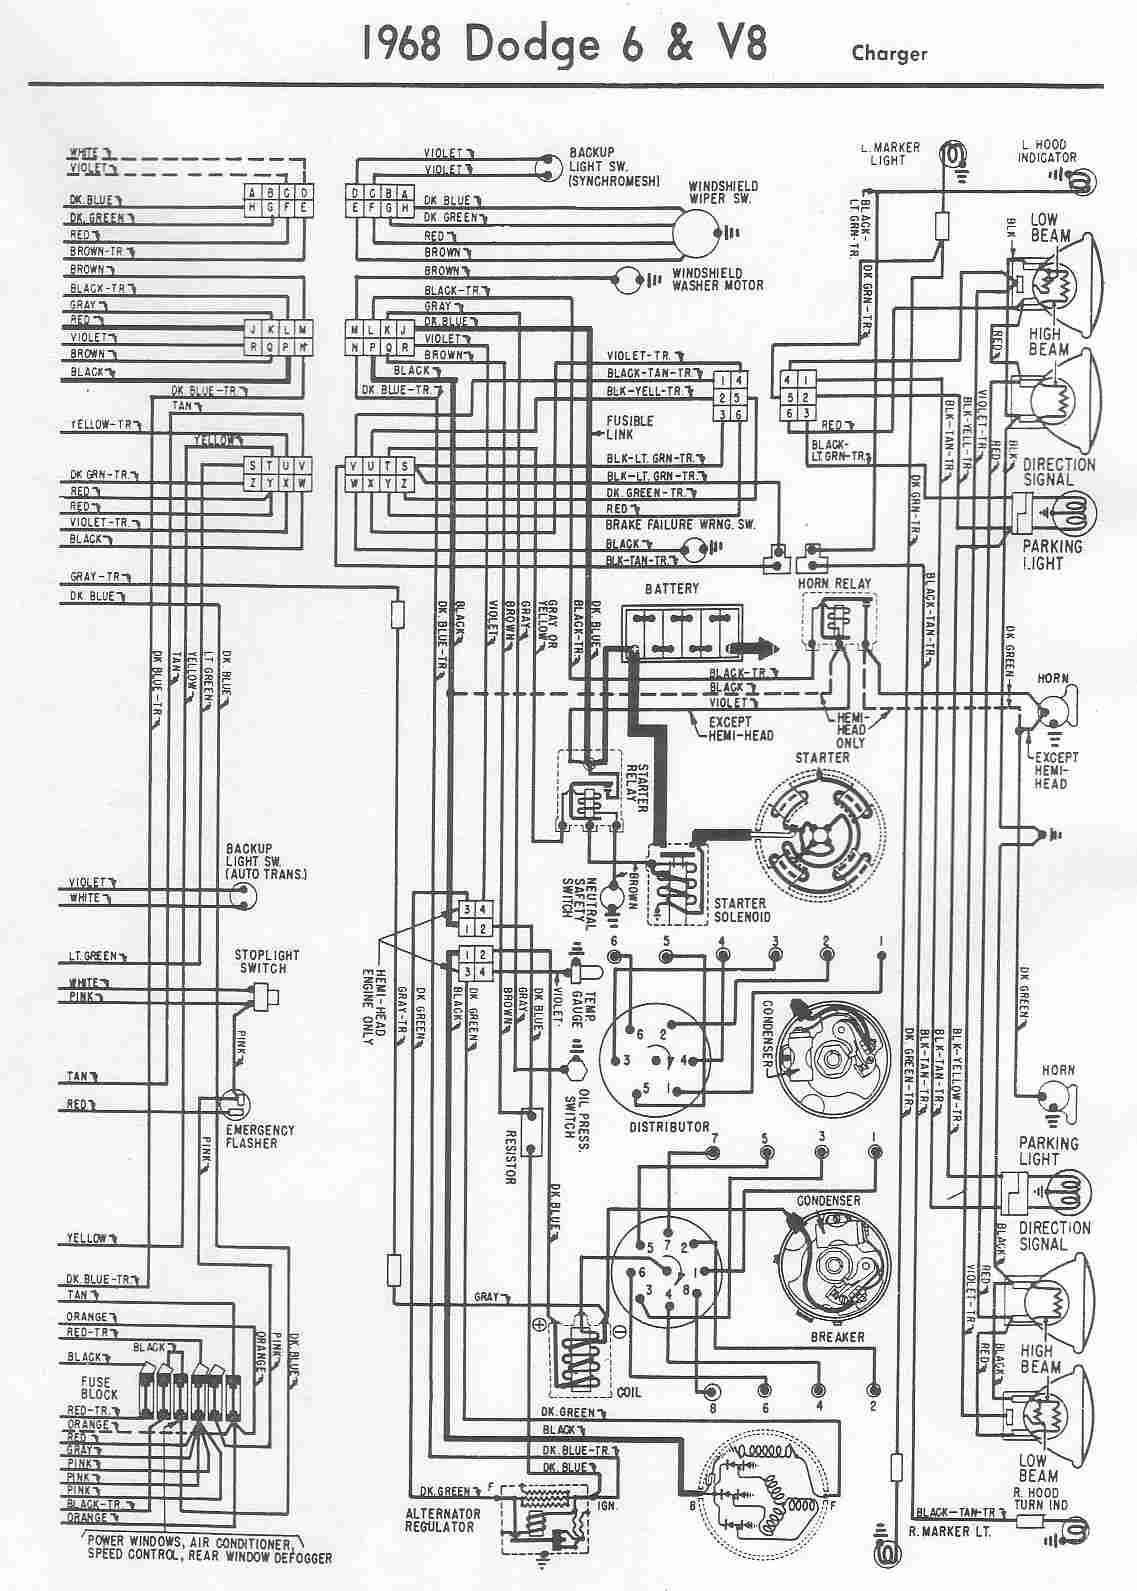 1972 chevy pickup wiring diagram wiring library rh 70 seimapping org